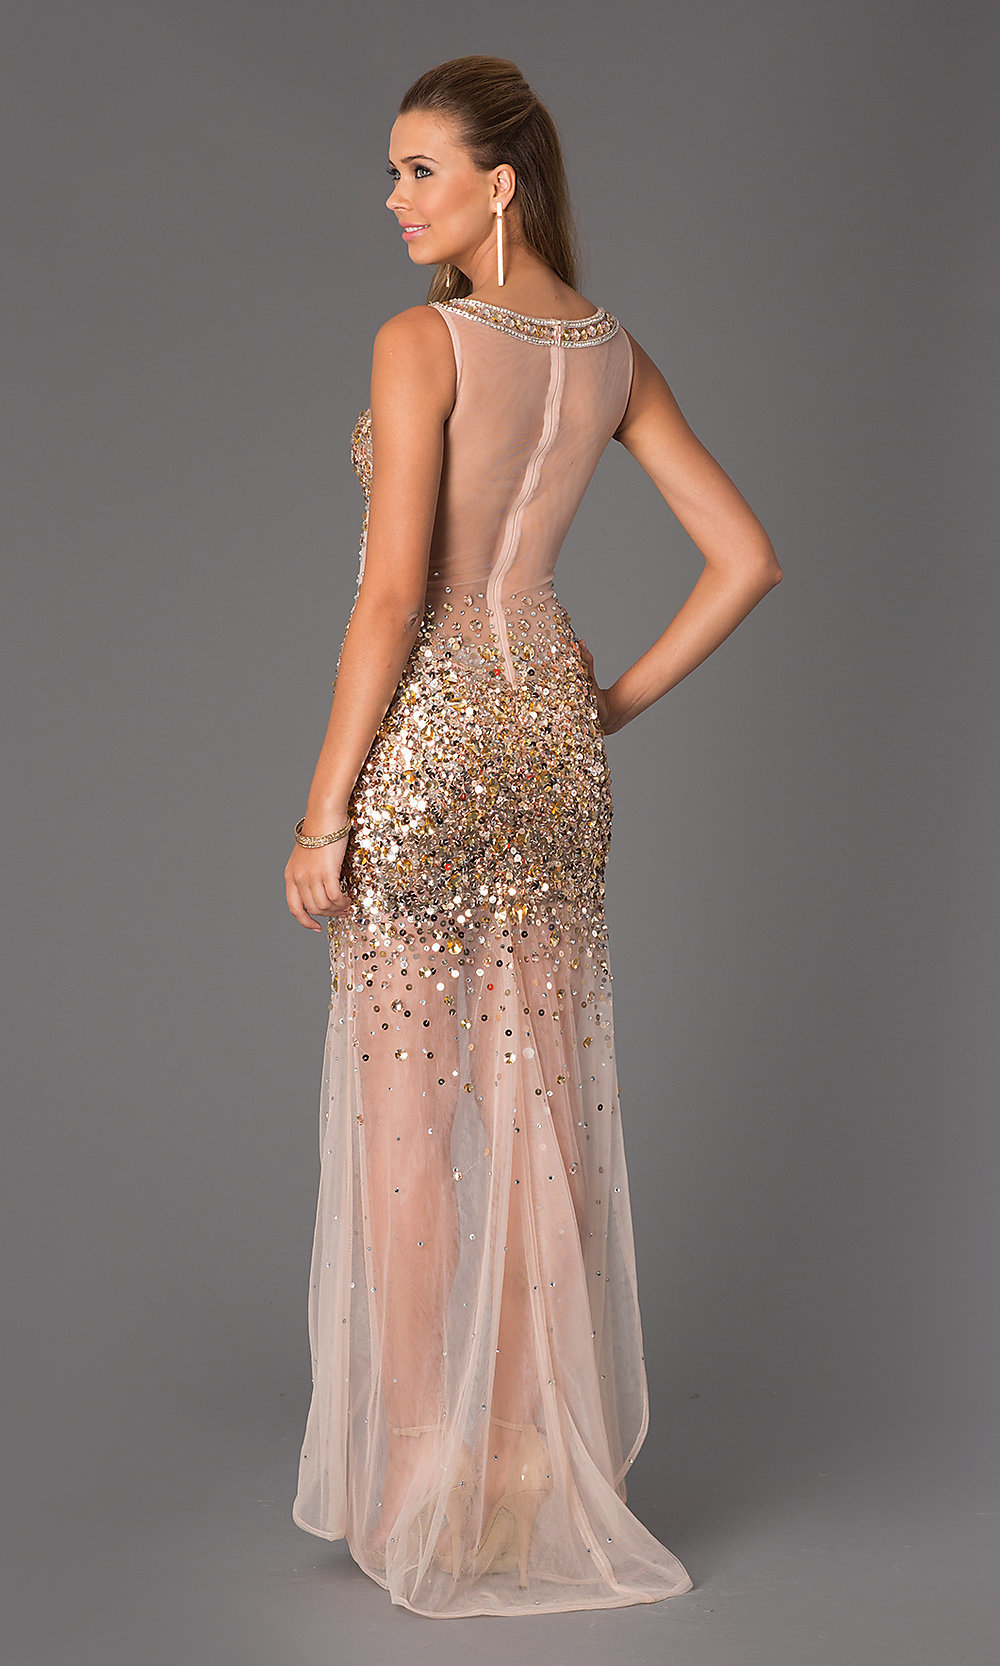 Sexy Sheer Beaded JVN by Jovani Prom Dress